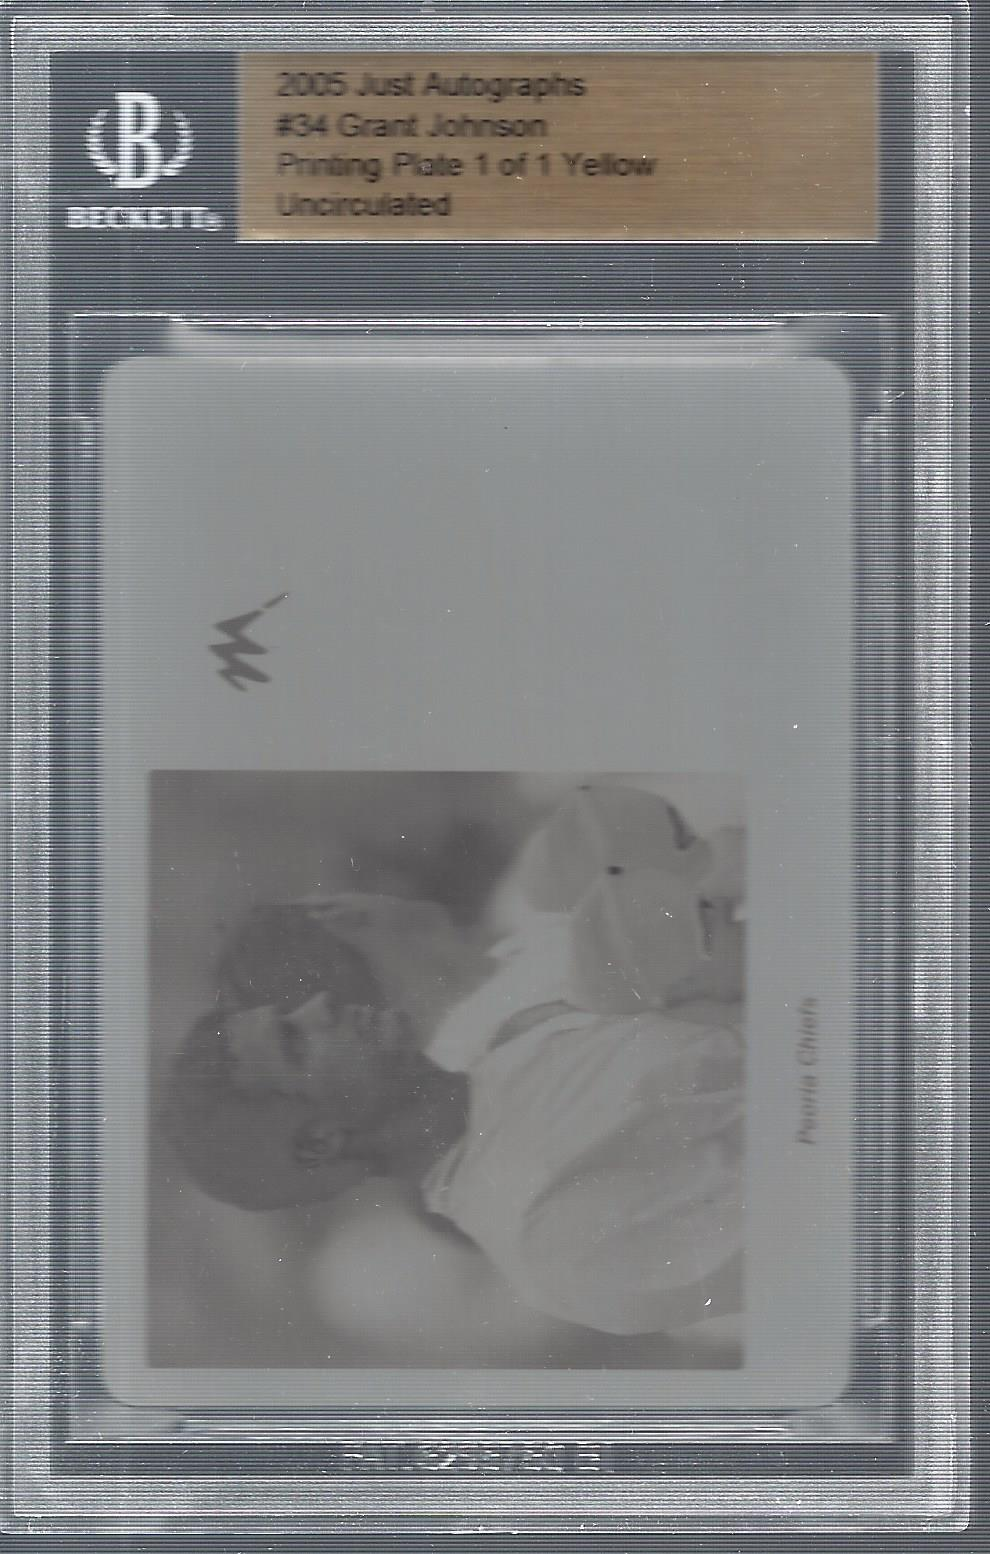 2005 Just Autographs Printing Plates Yellow #34 Grant Johnson